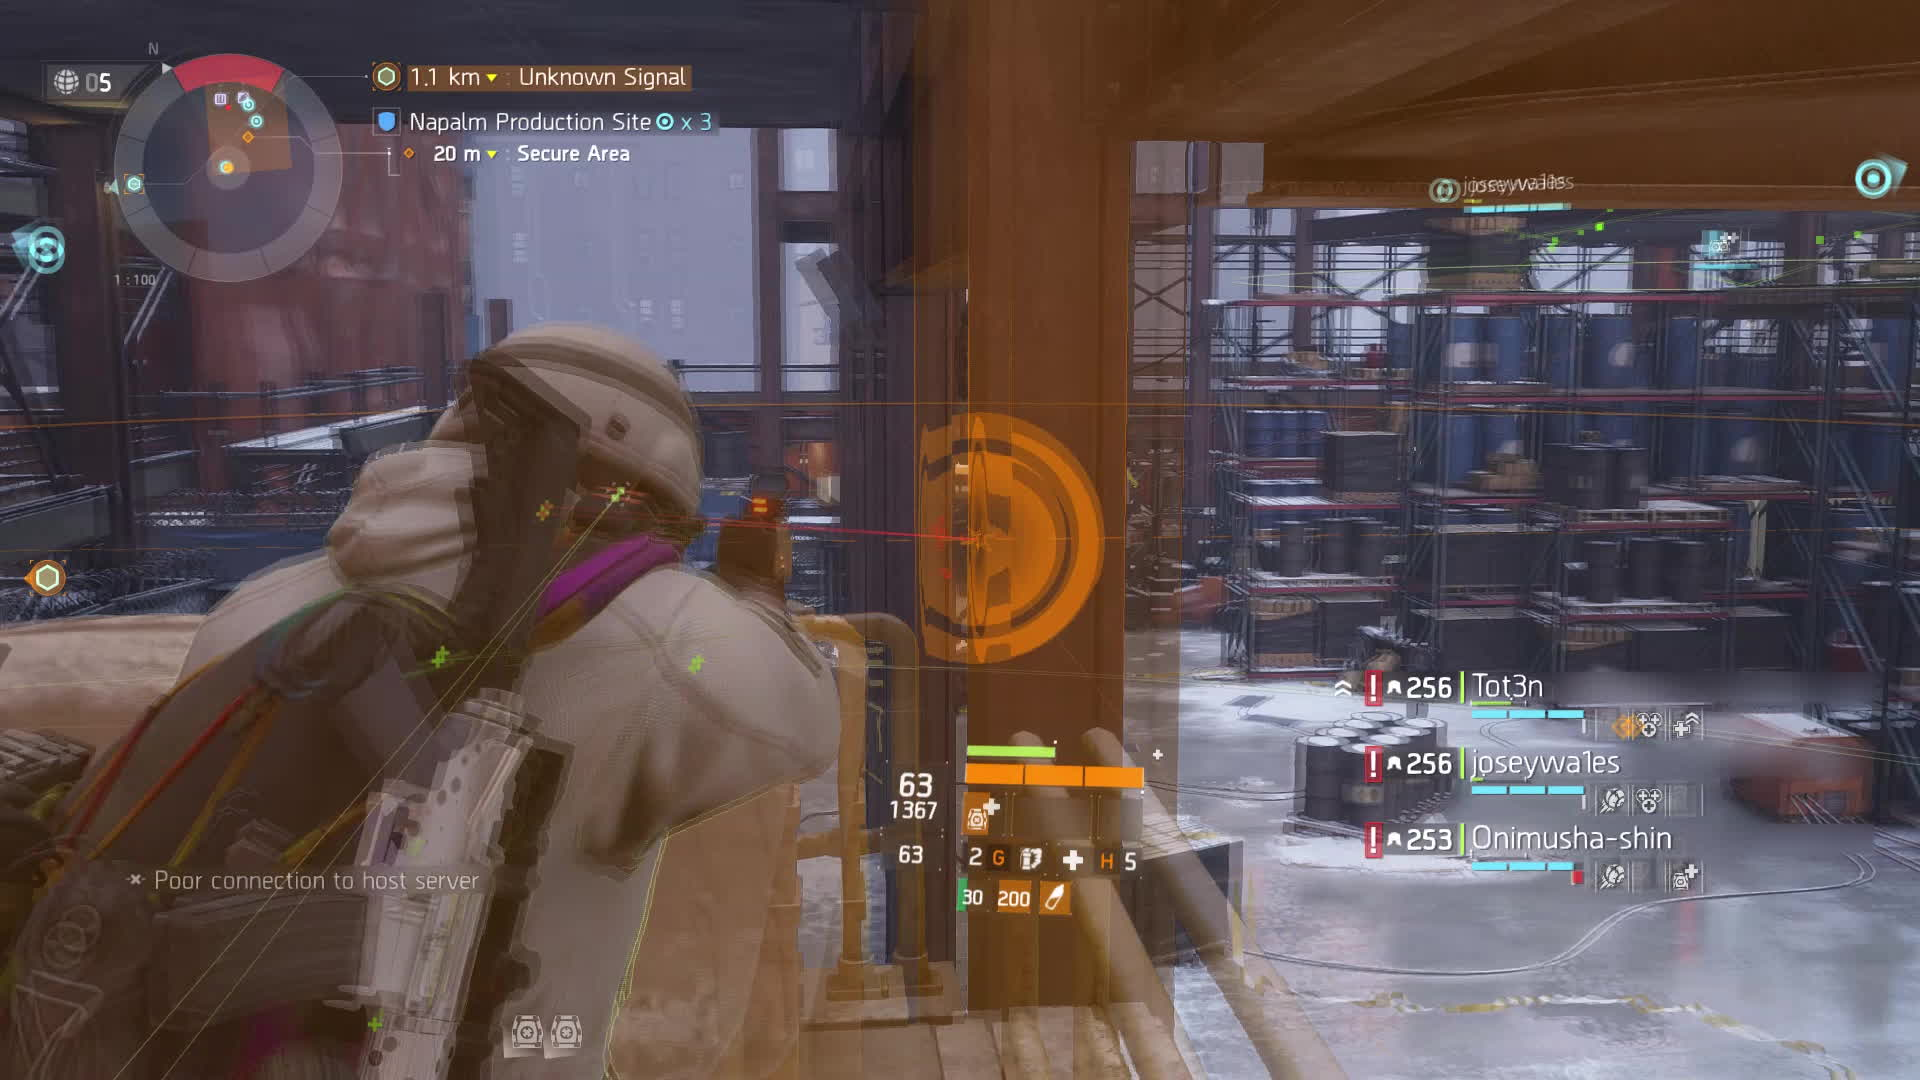 thedivision, Tactician's Authority - What Weapons? (reddit) GIFs